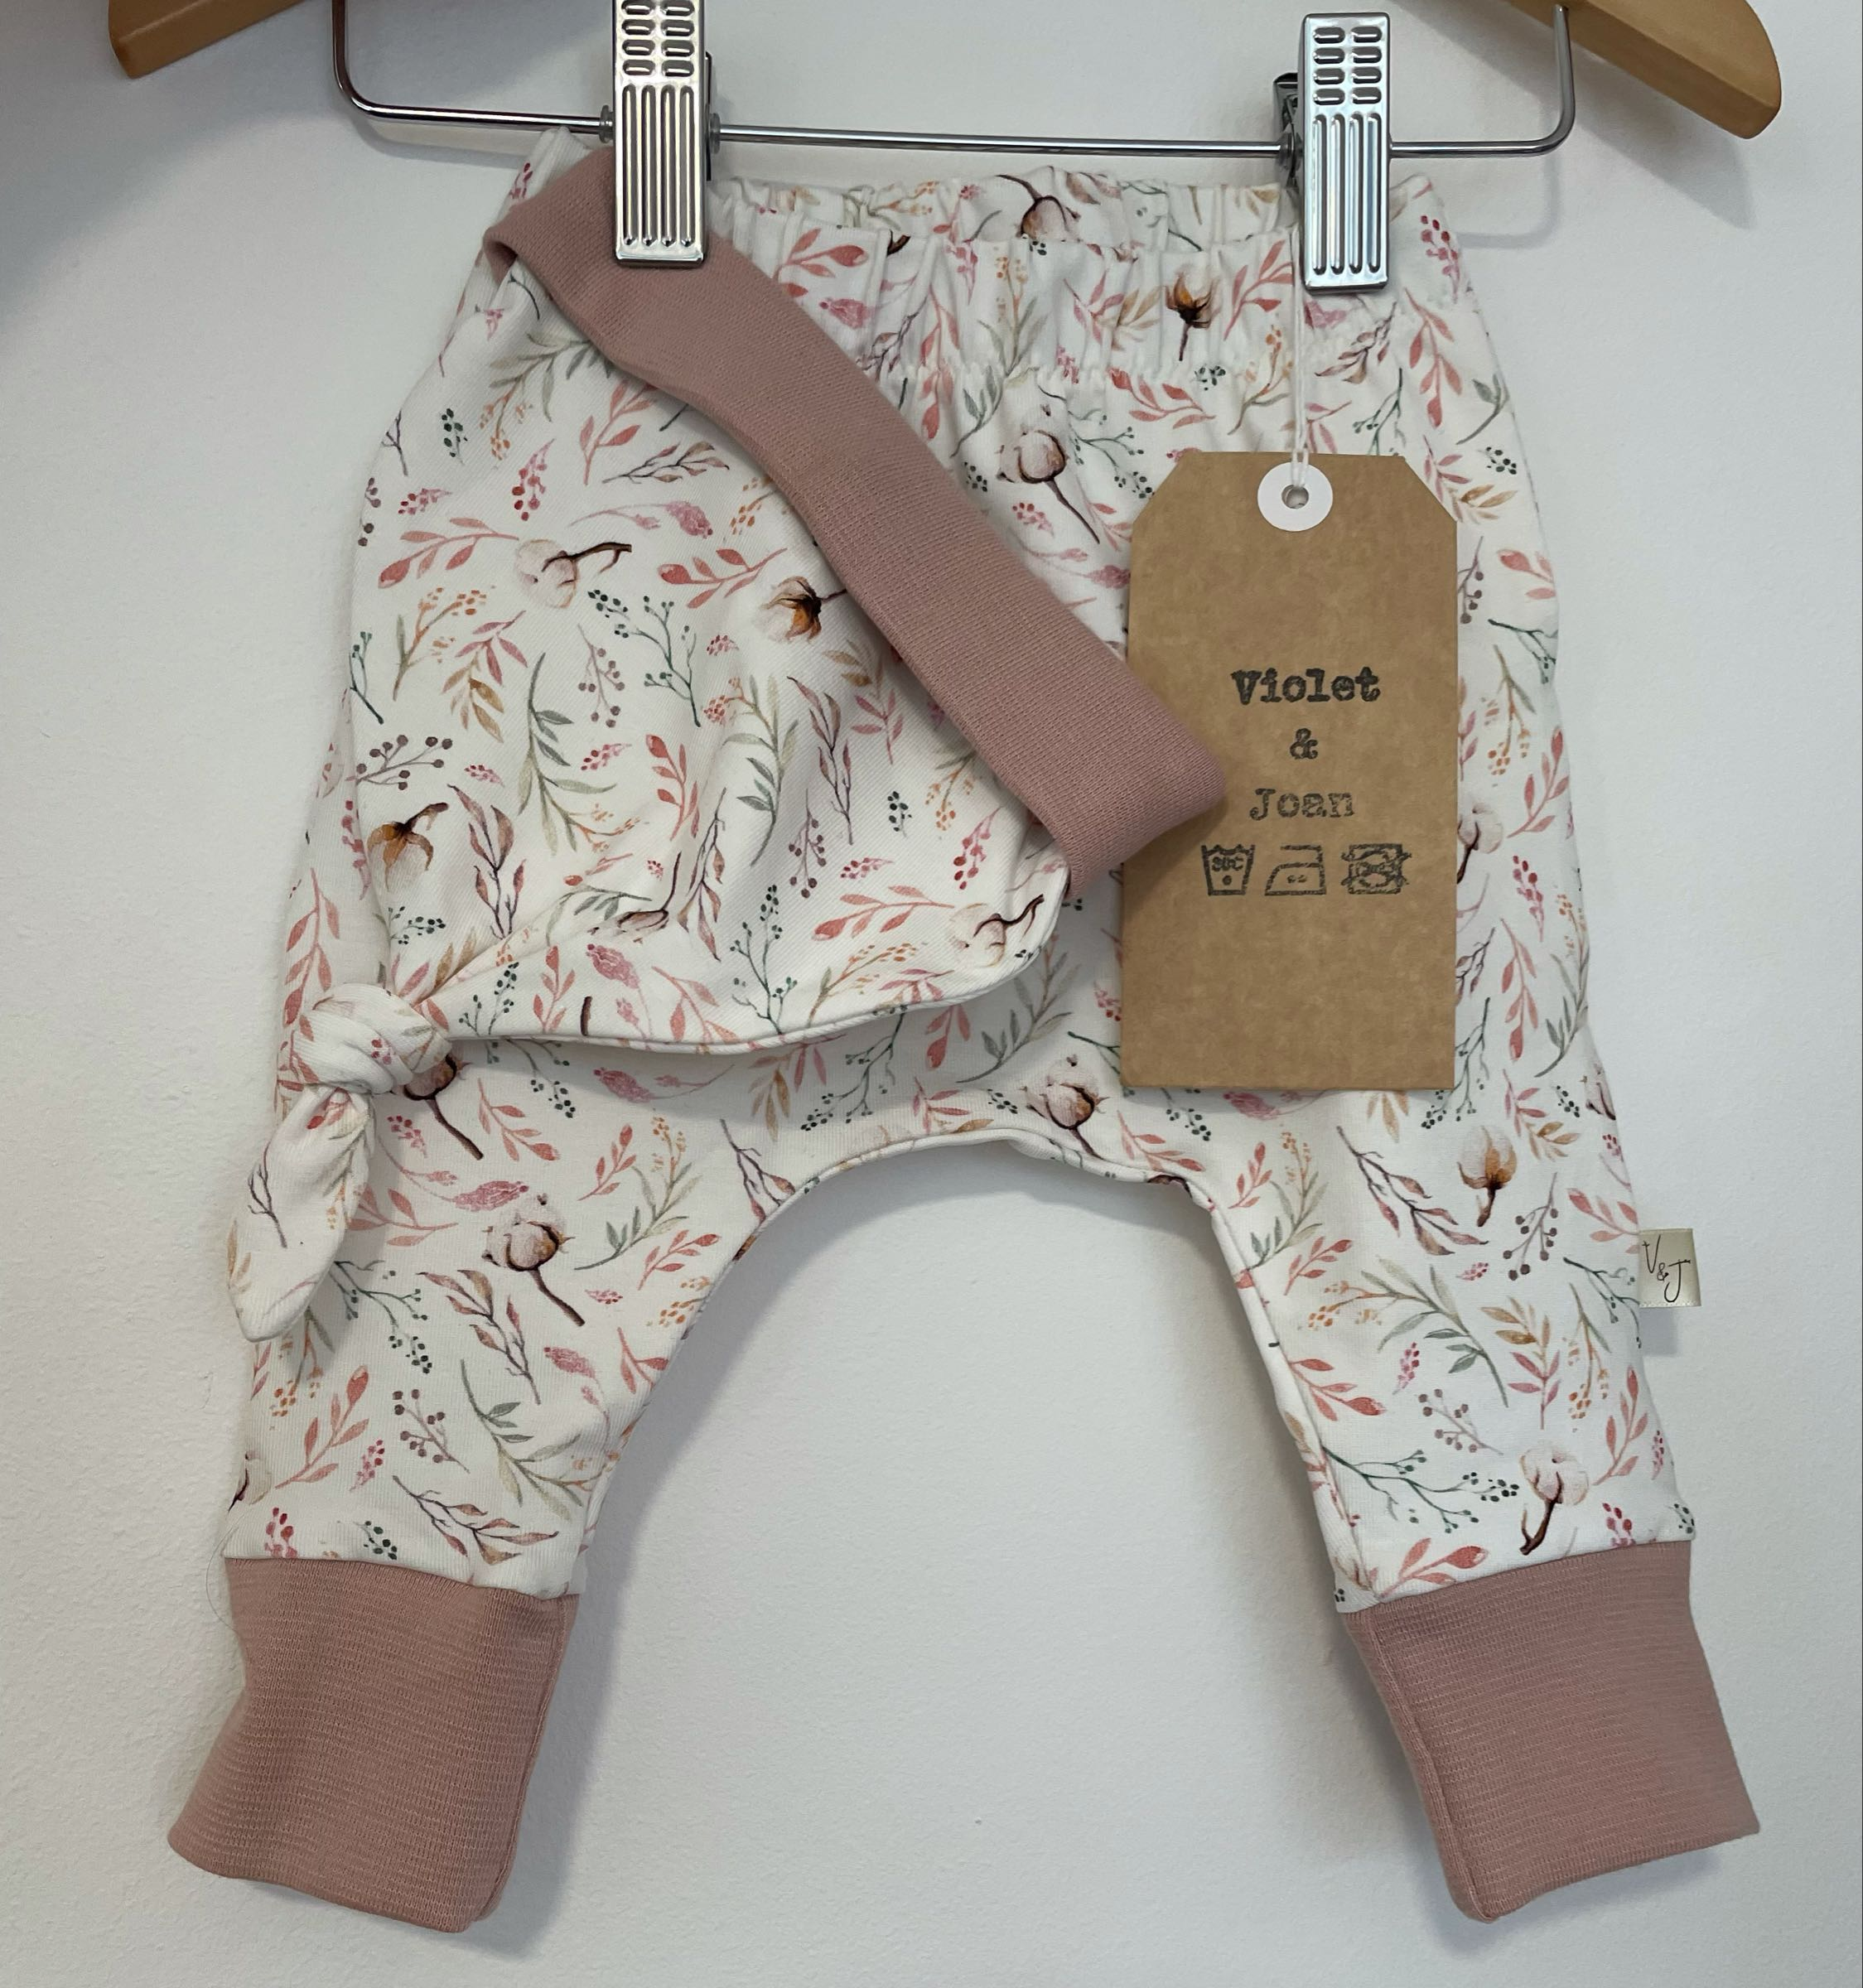 Violet and Joan Handmade Organic Clothing -  pink Cotton bud